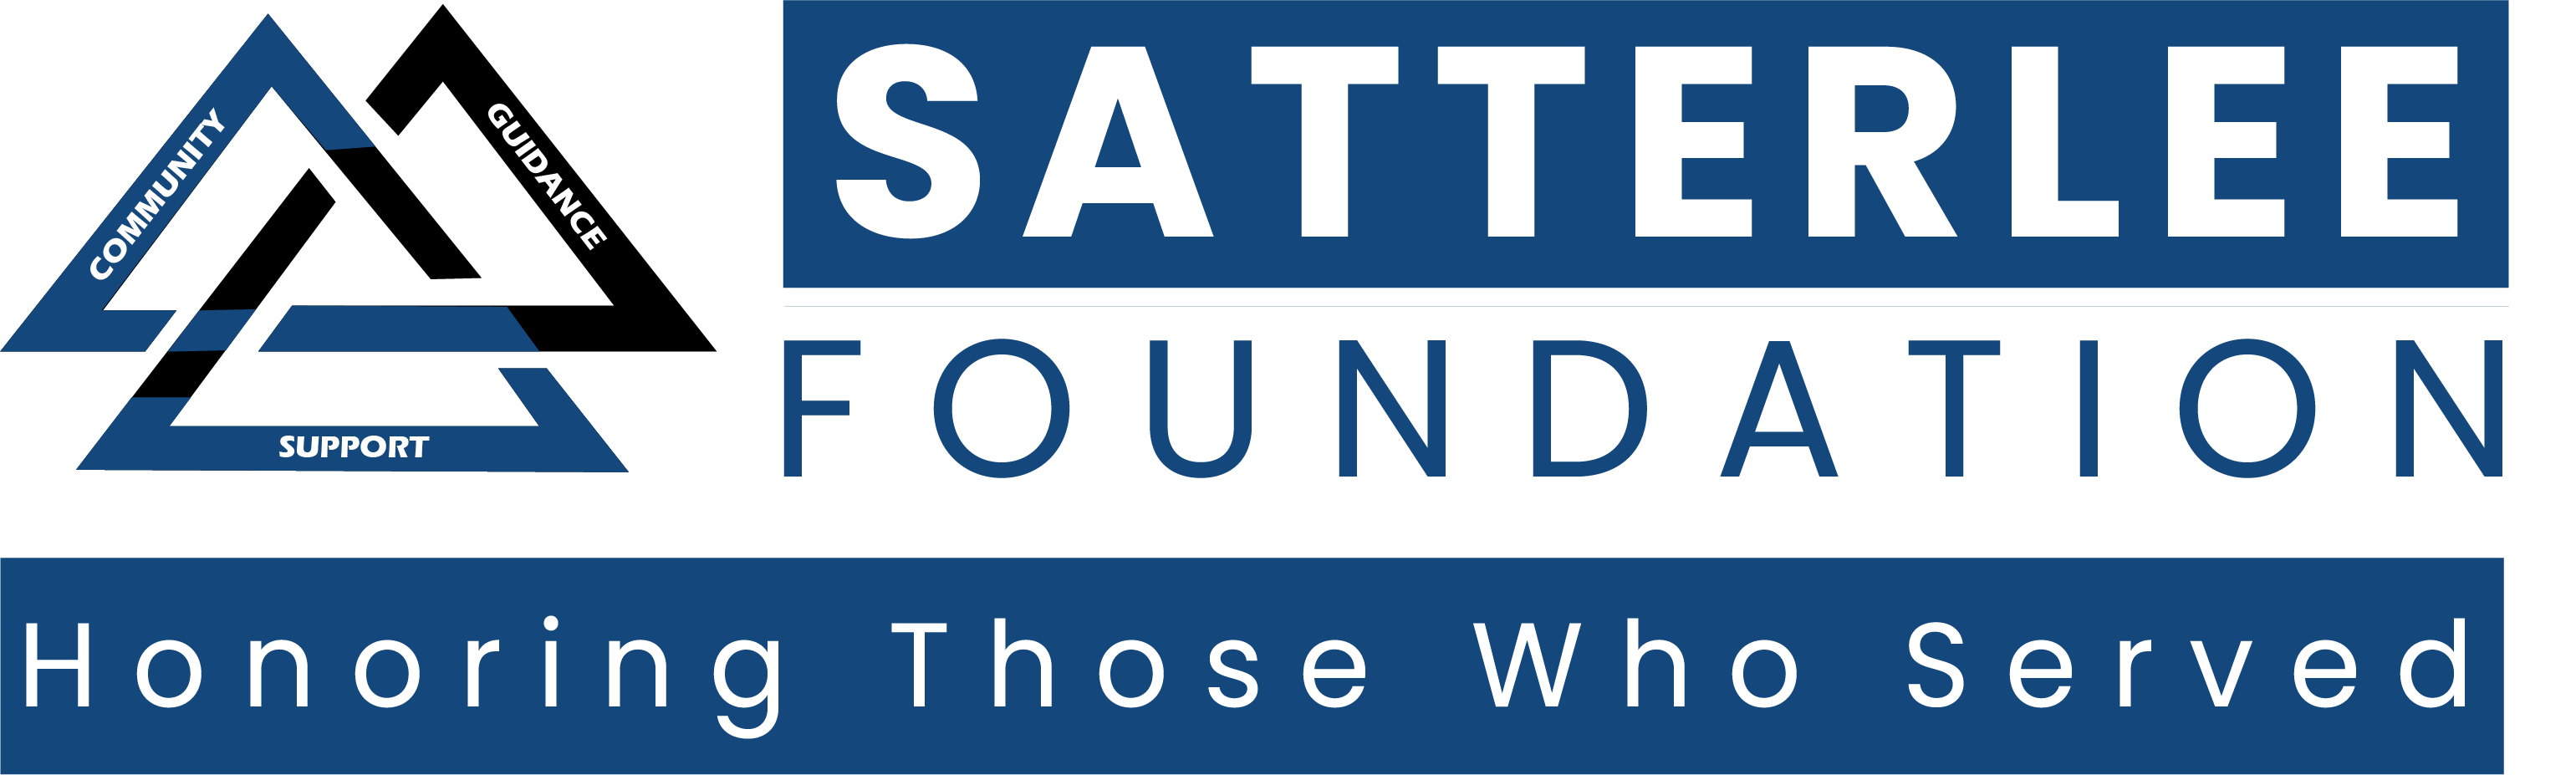 Satterlee Foundation